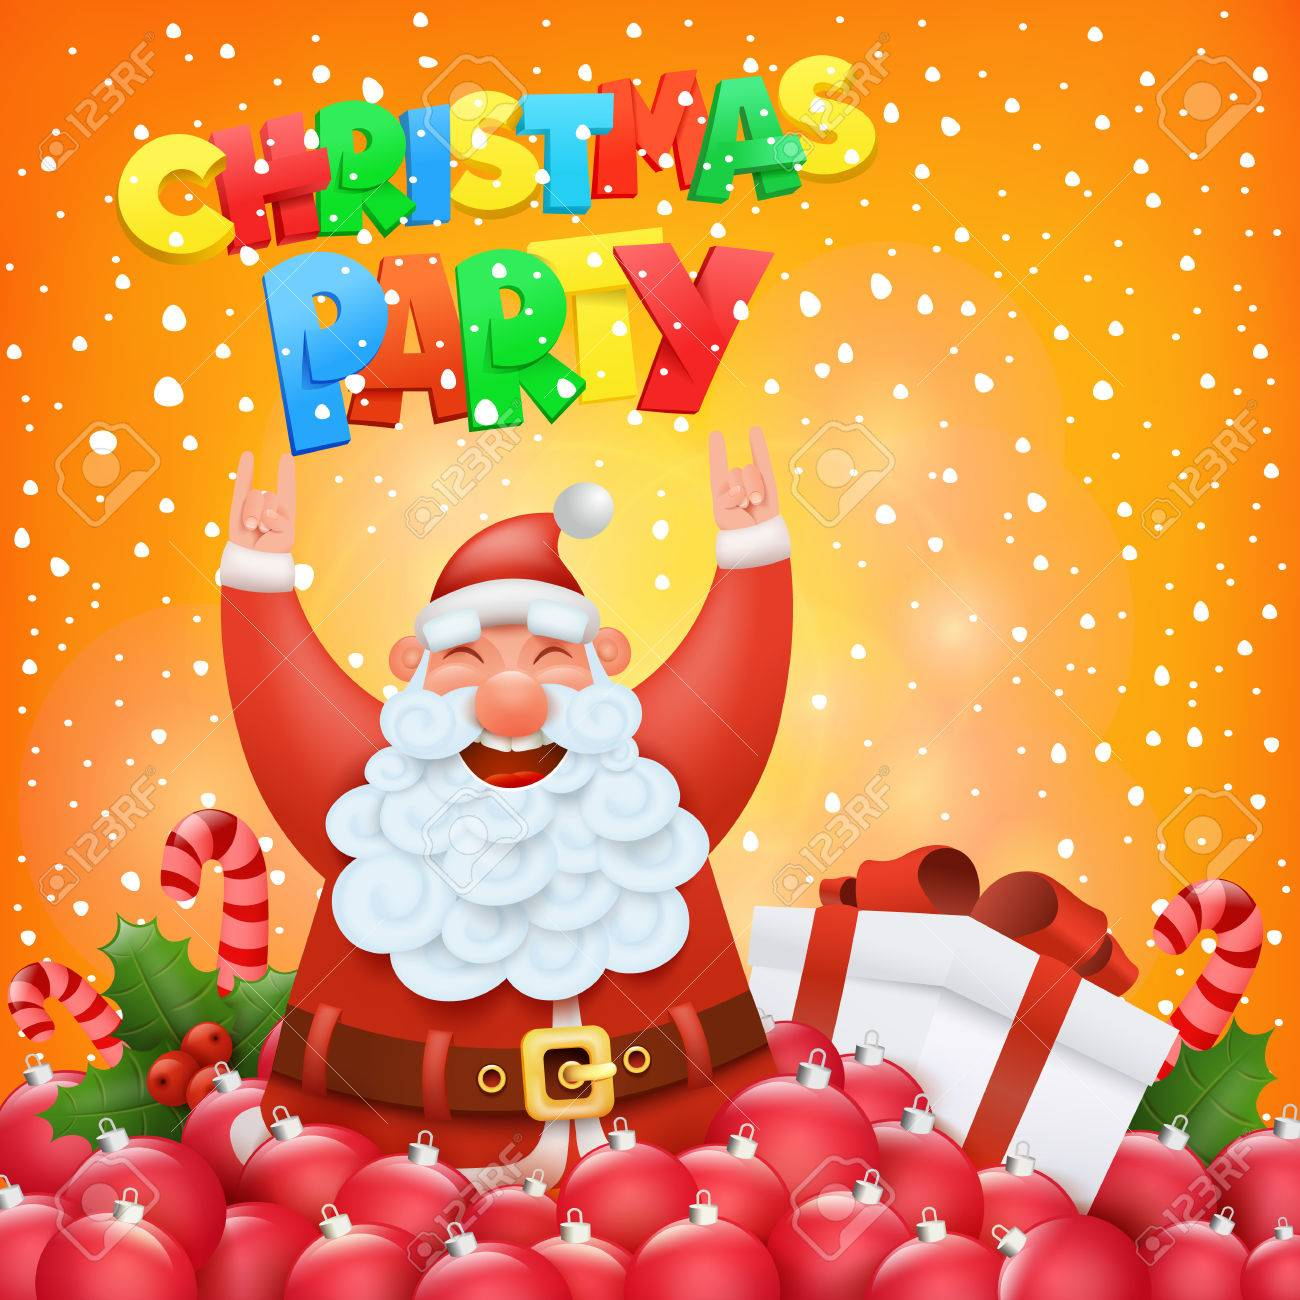 Christmas Party Invitation Card With Funny Santa Claus Character ...